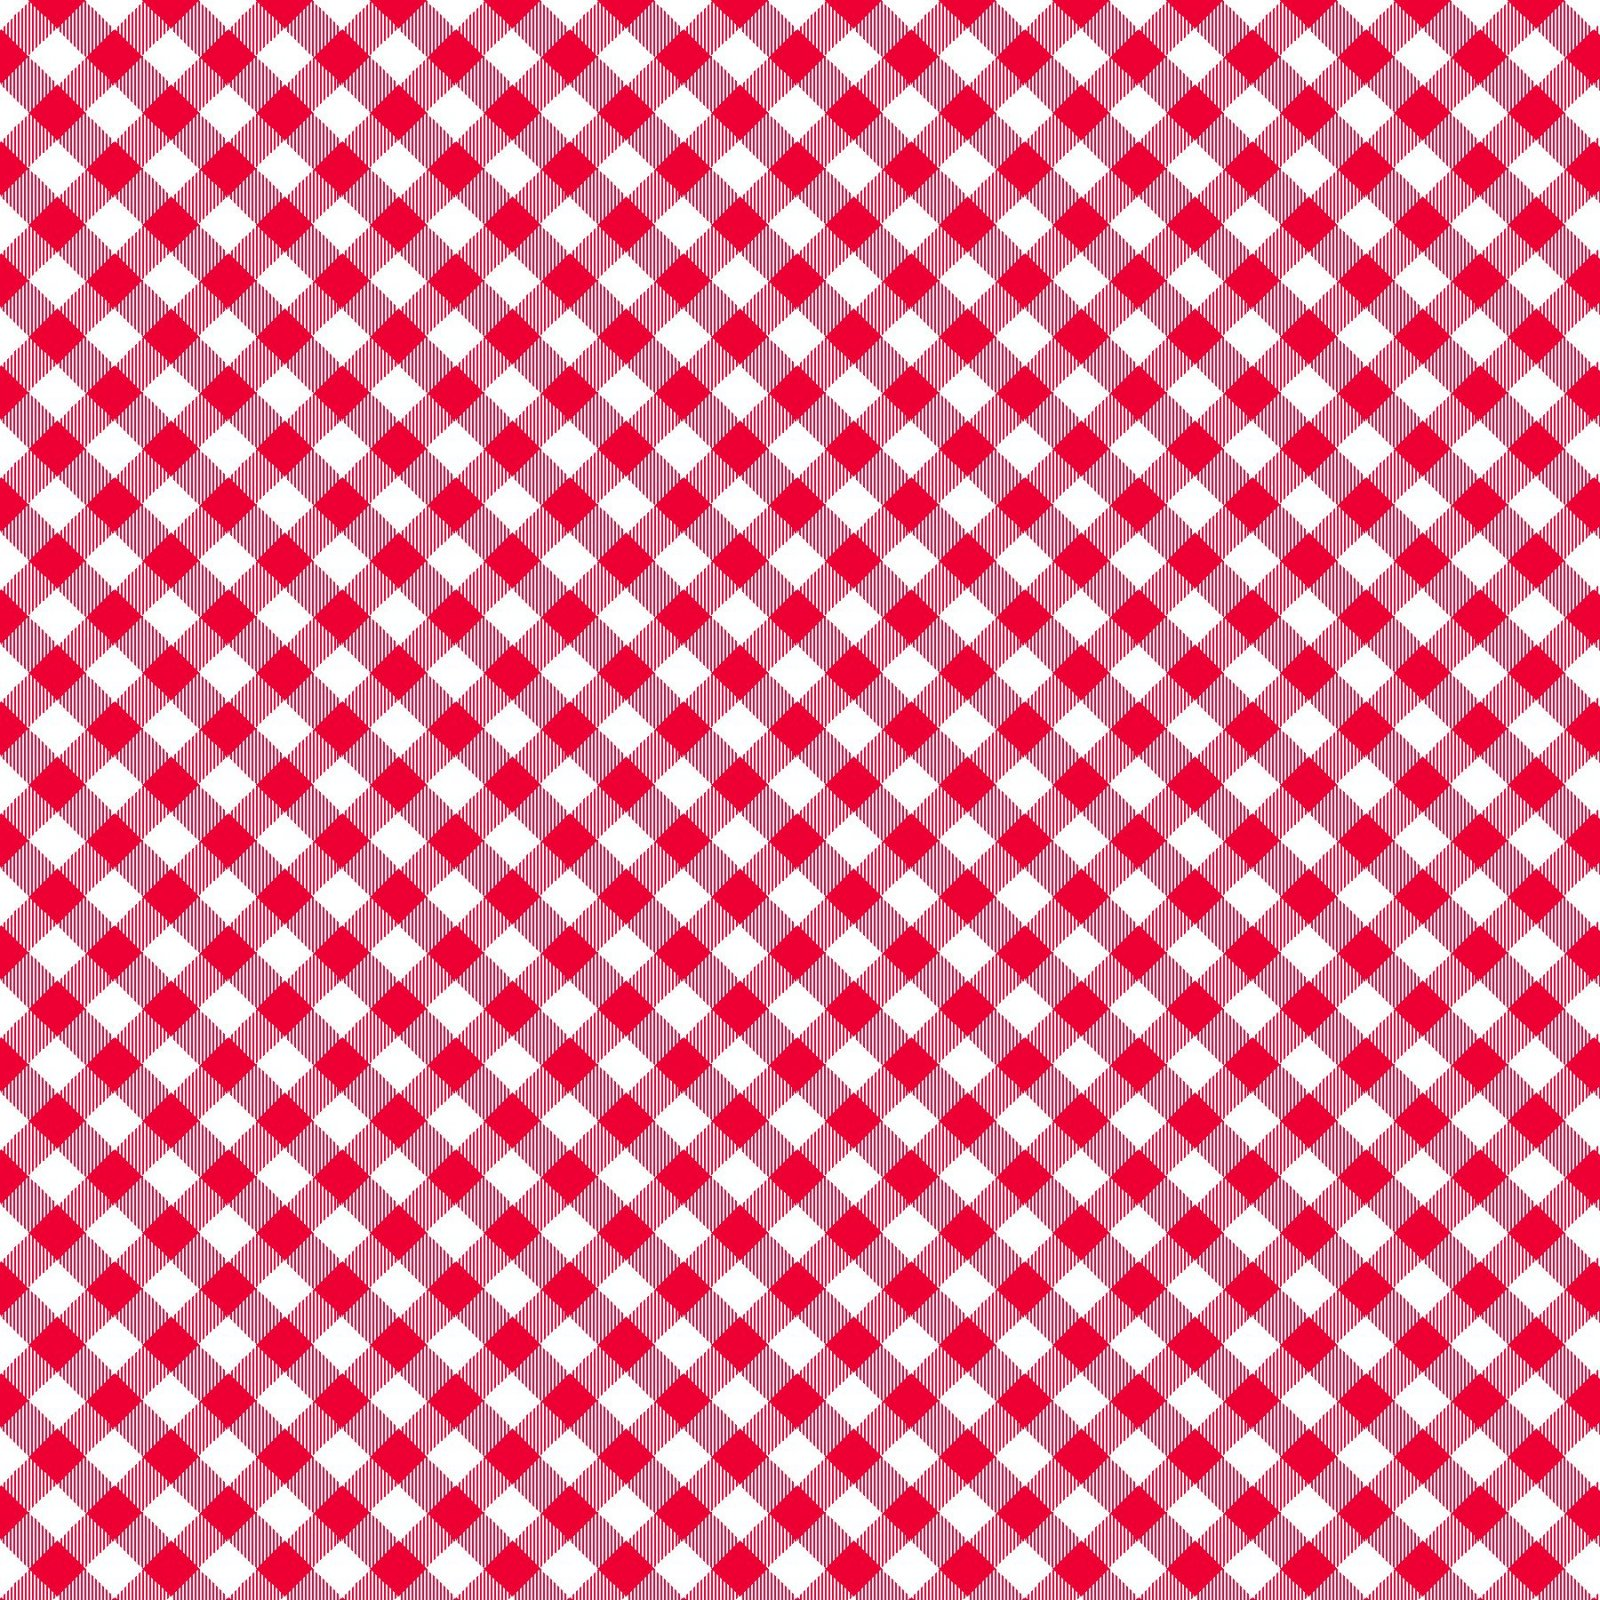 HG-Chelsea's Checks 9700-8 Red/White - 1/8 Check